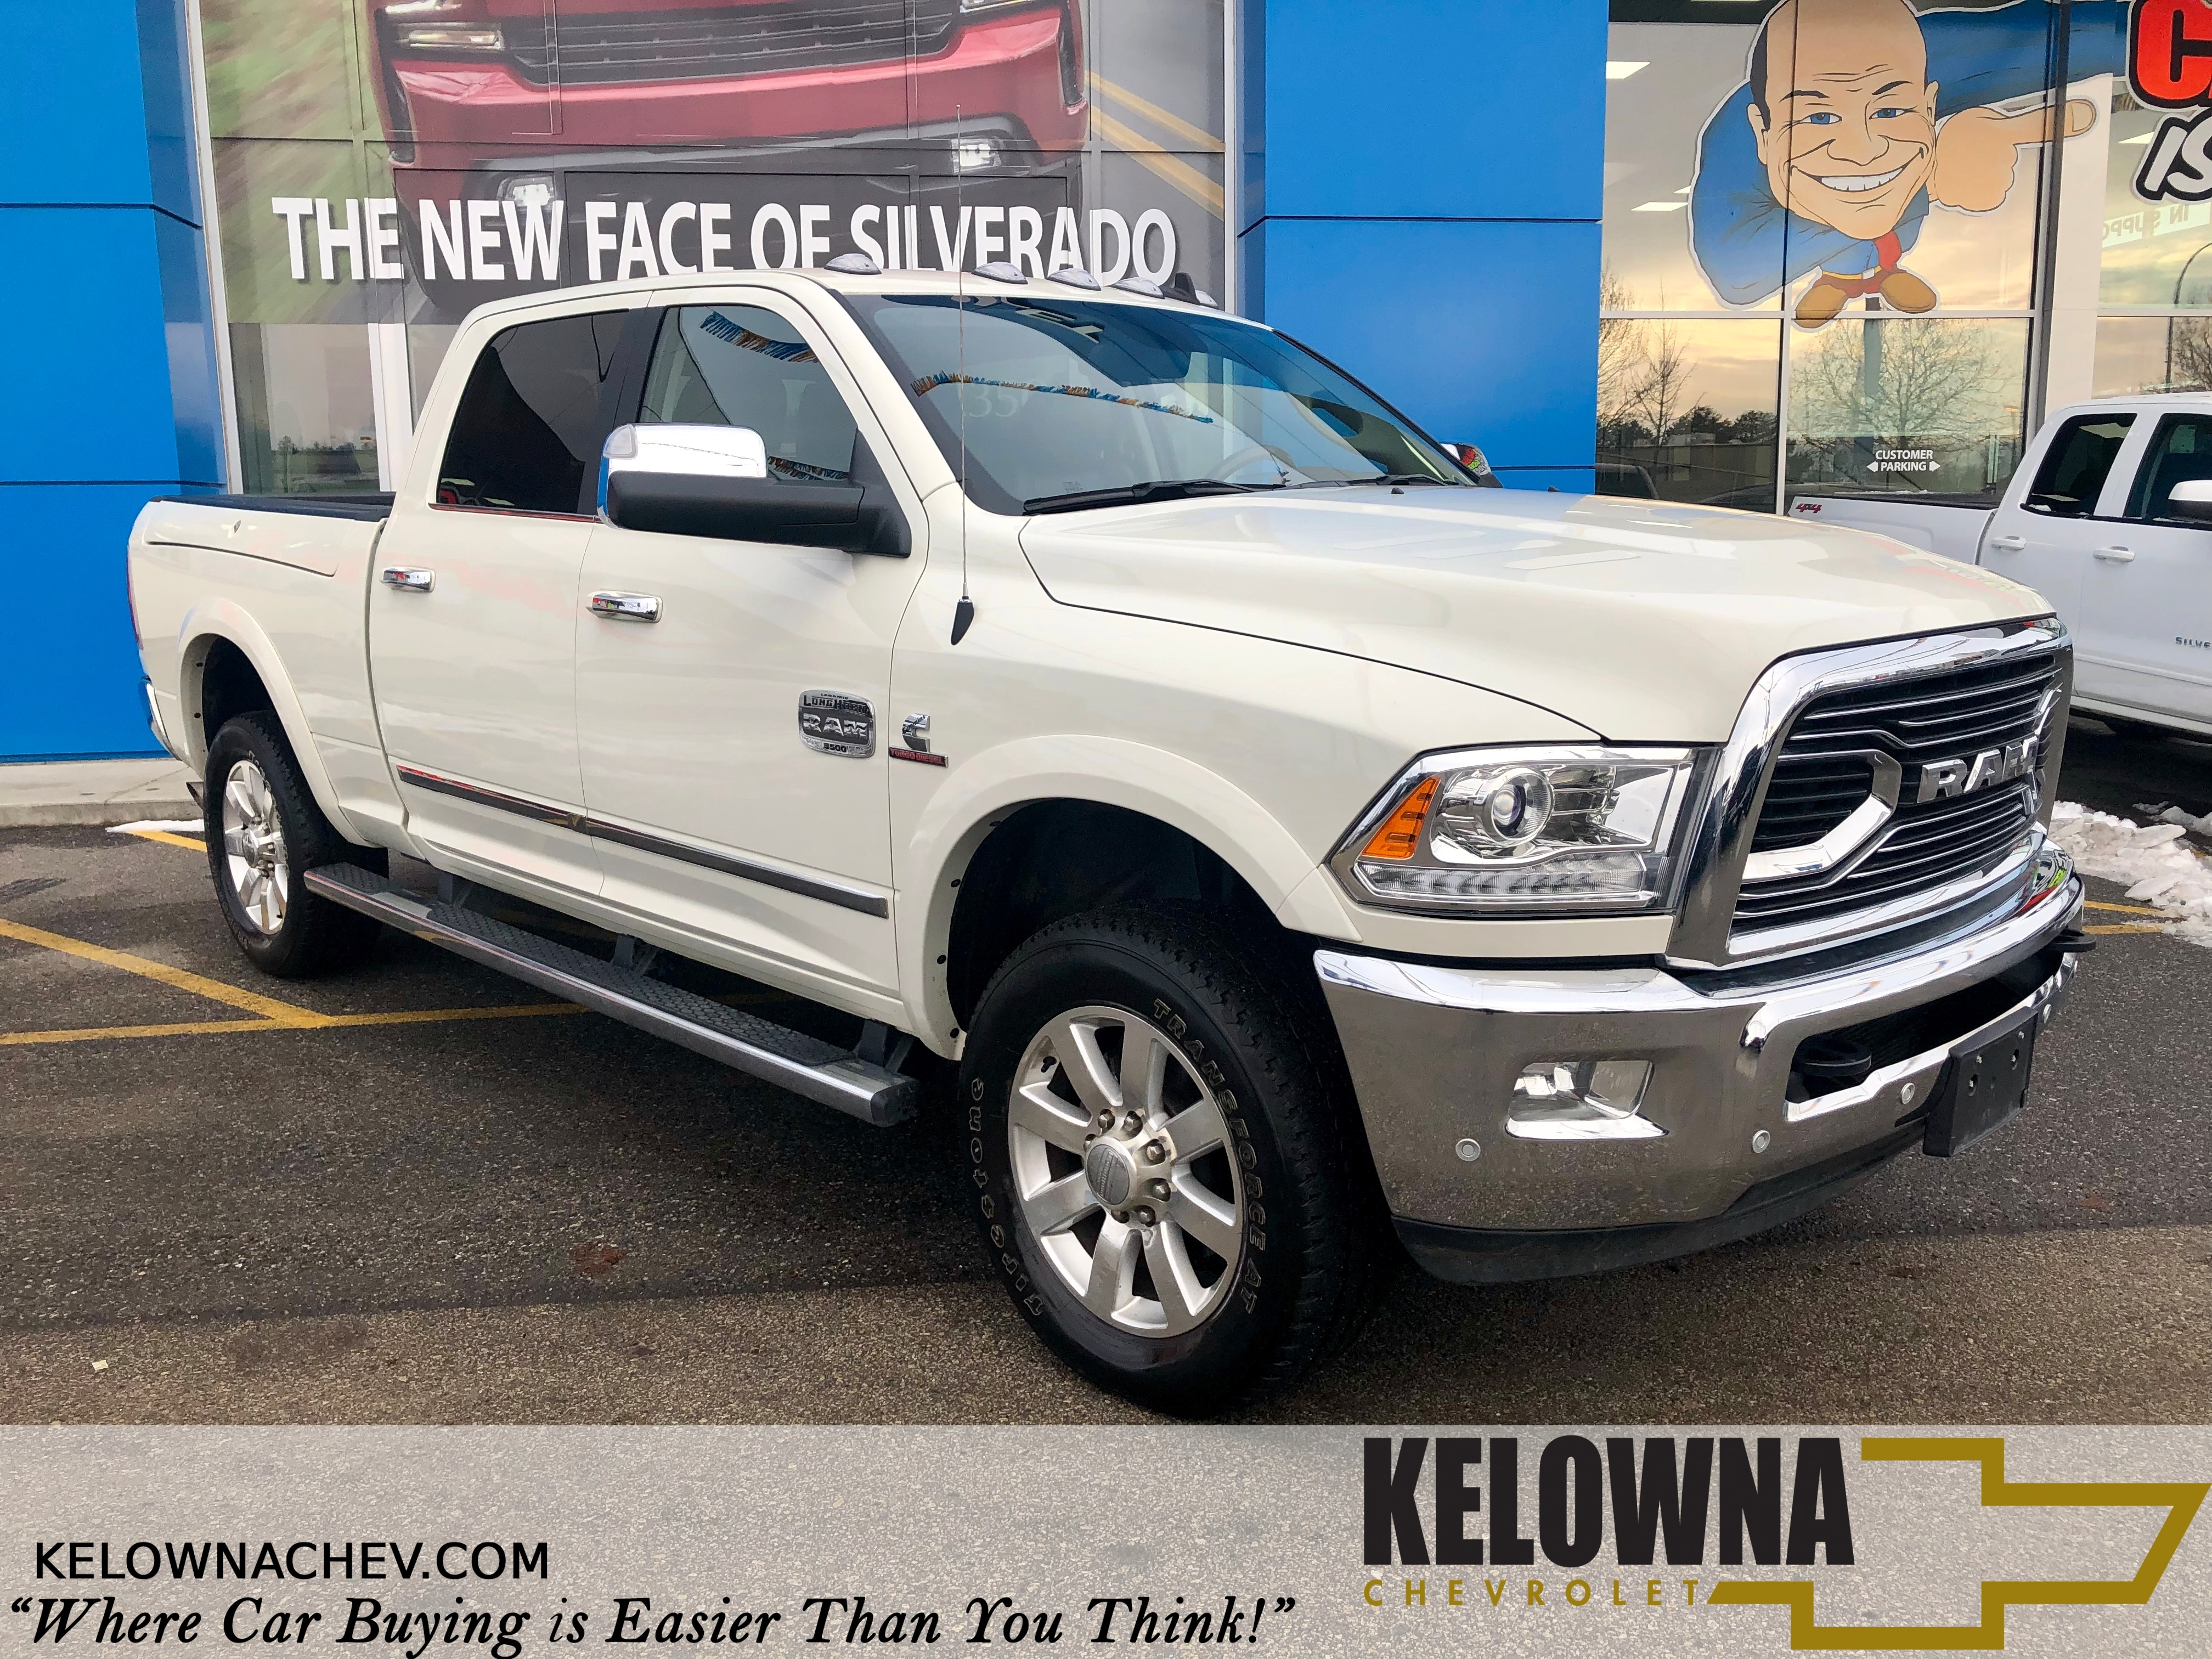 2018 Ram 3500 Longhorn 4x4, Navigation, Back Up Camera, Leather Truck Crew Cab